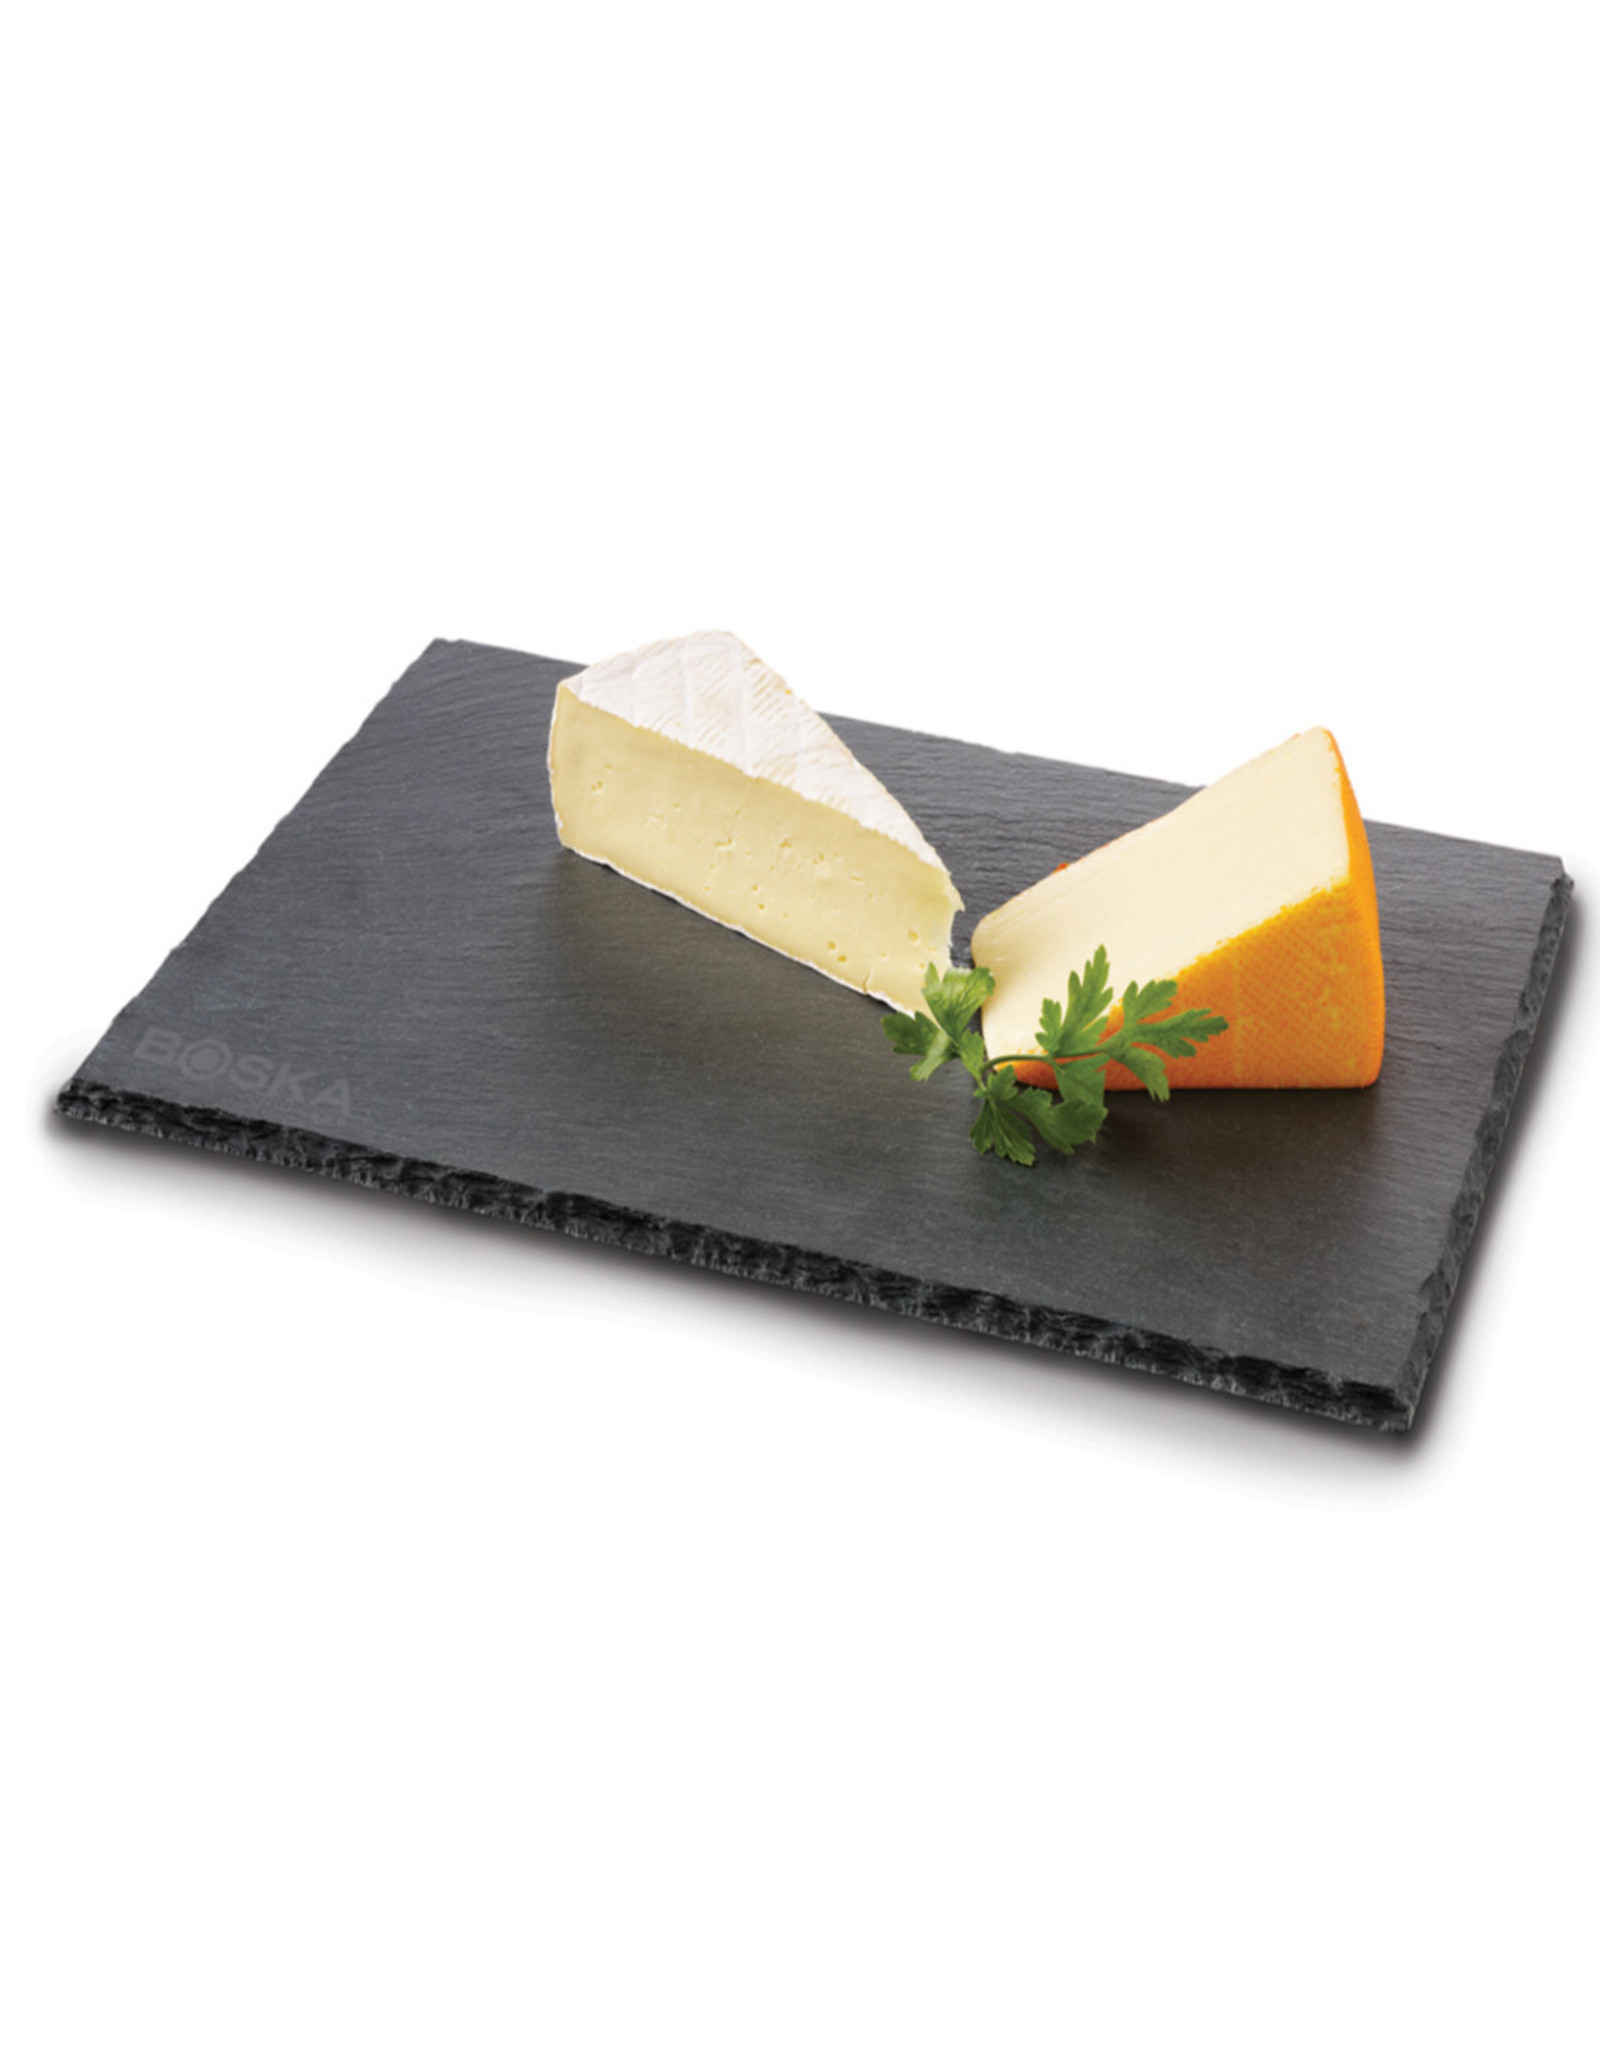 Boska Holland Boska Holland Serving Board Slate - Large